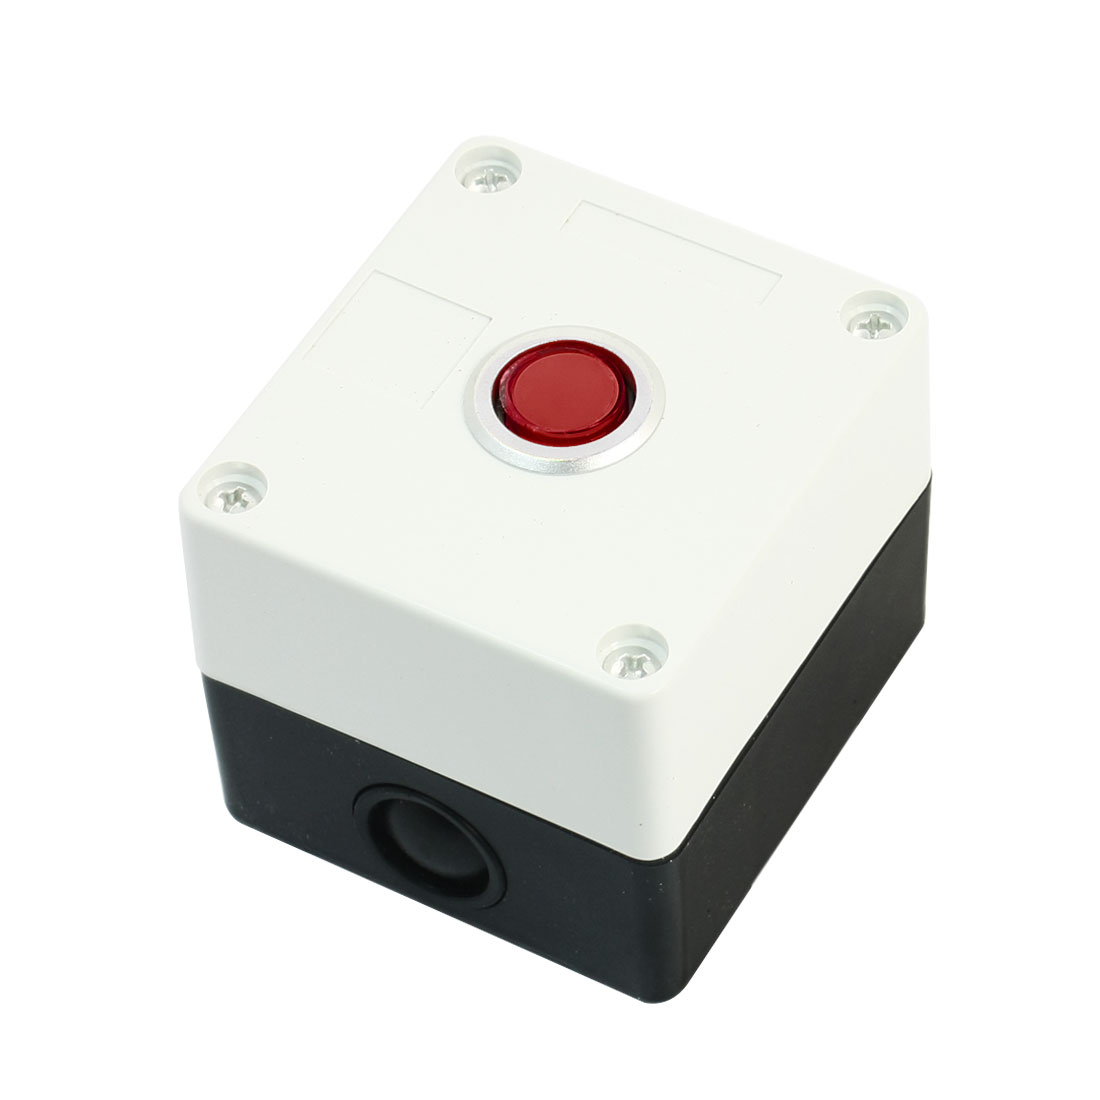 AC220V 5A SPDT 1 NO 1 NC 3 Pin Soldering Latching Type Red Button Pushbutton Control Station Box